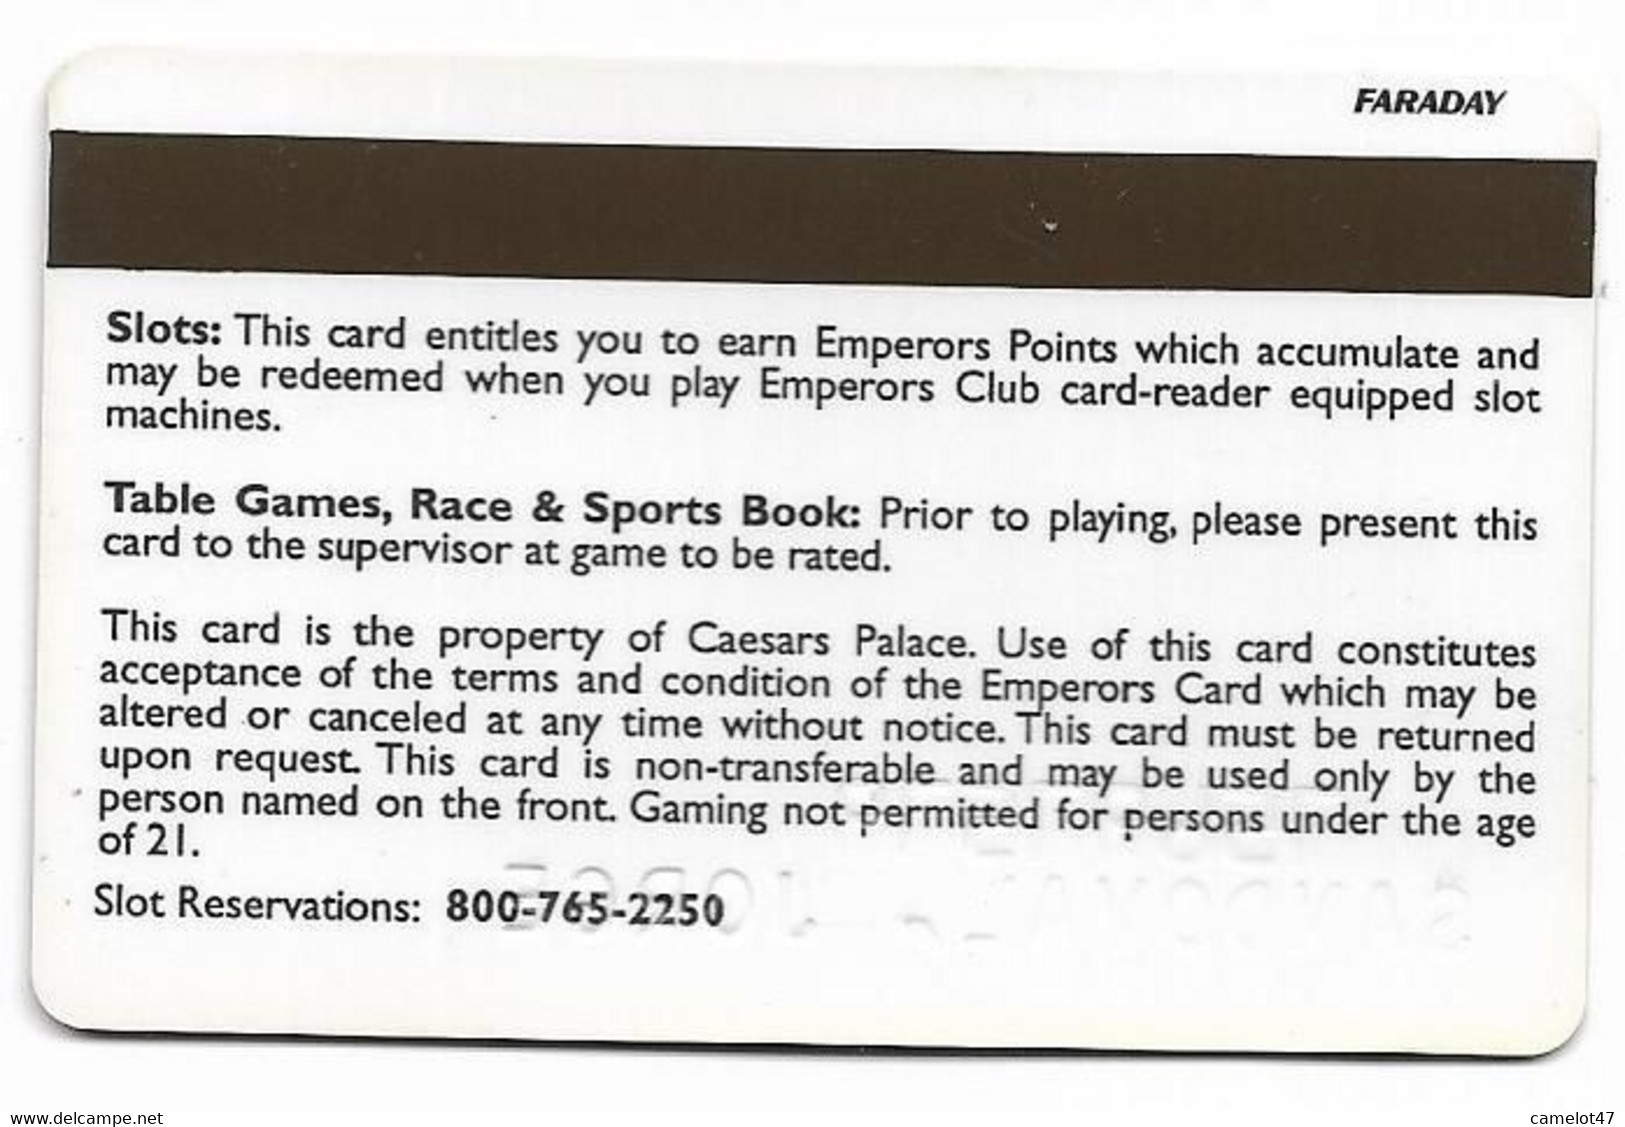 Caesars Palace Casino, Various Locations, Older Used Slot Or Player's Card, # Caesars-7b - Casino Cards